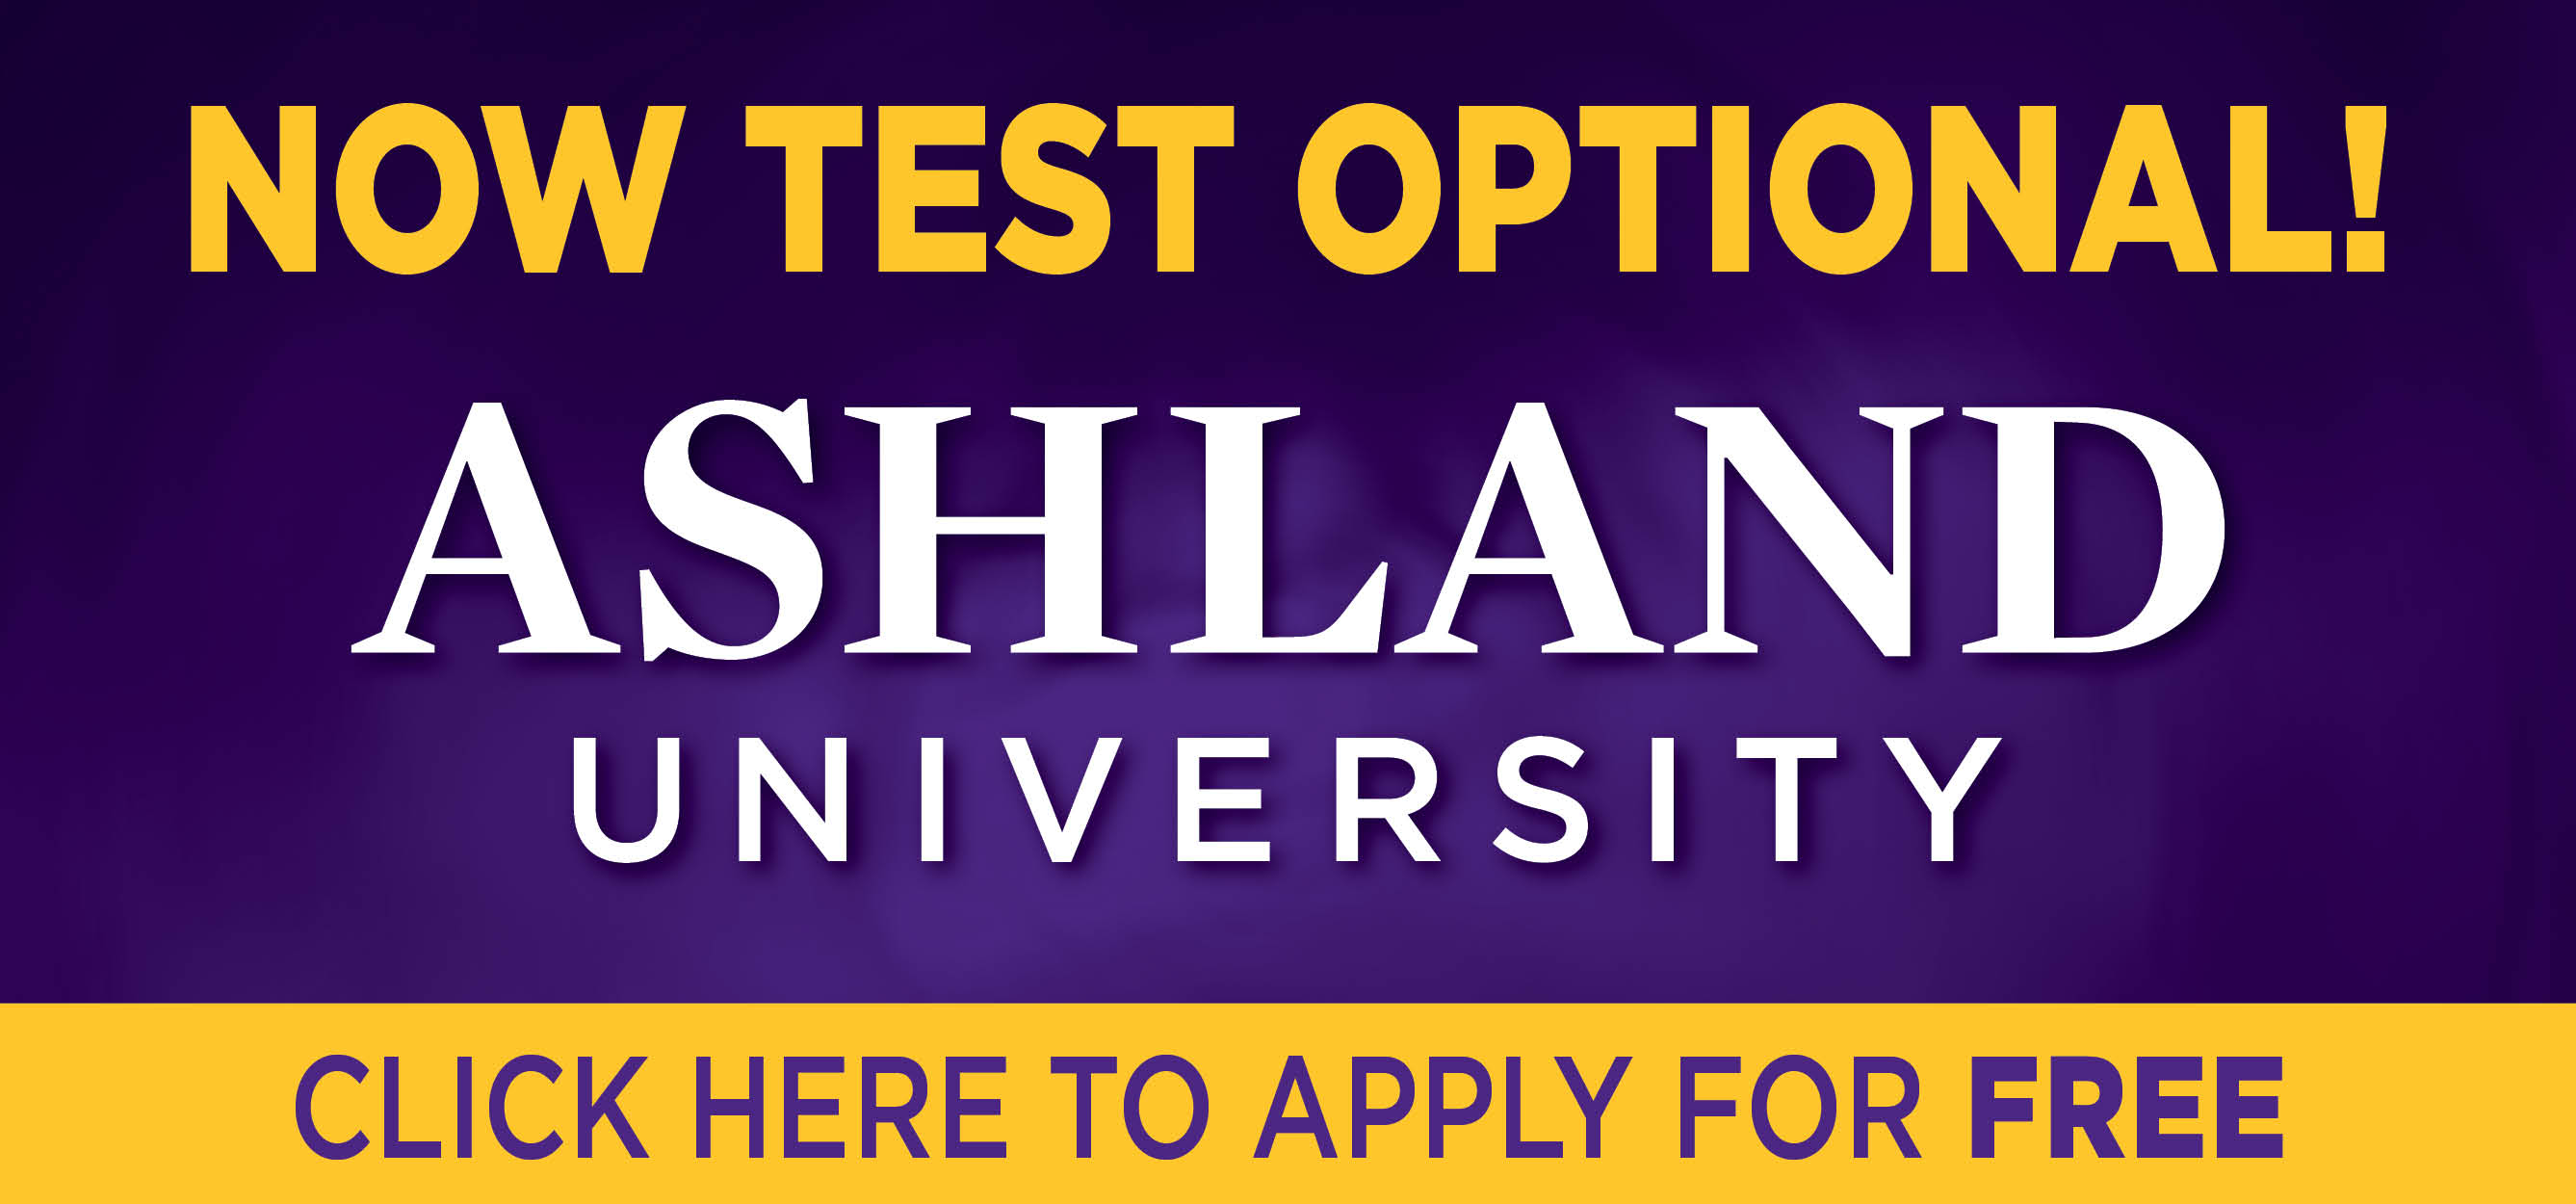 Ashland University: Now test optional! Click here to apply.